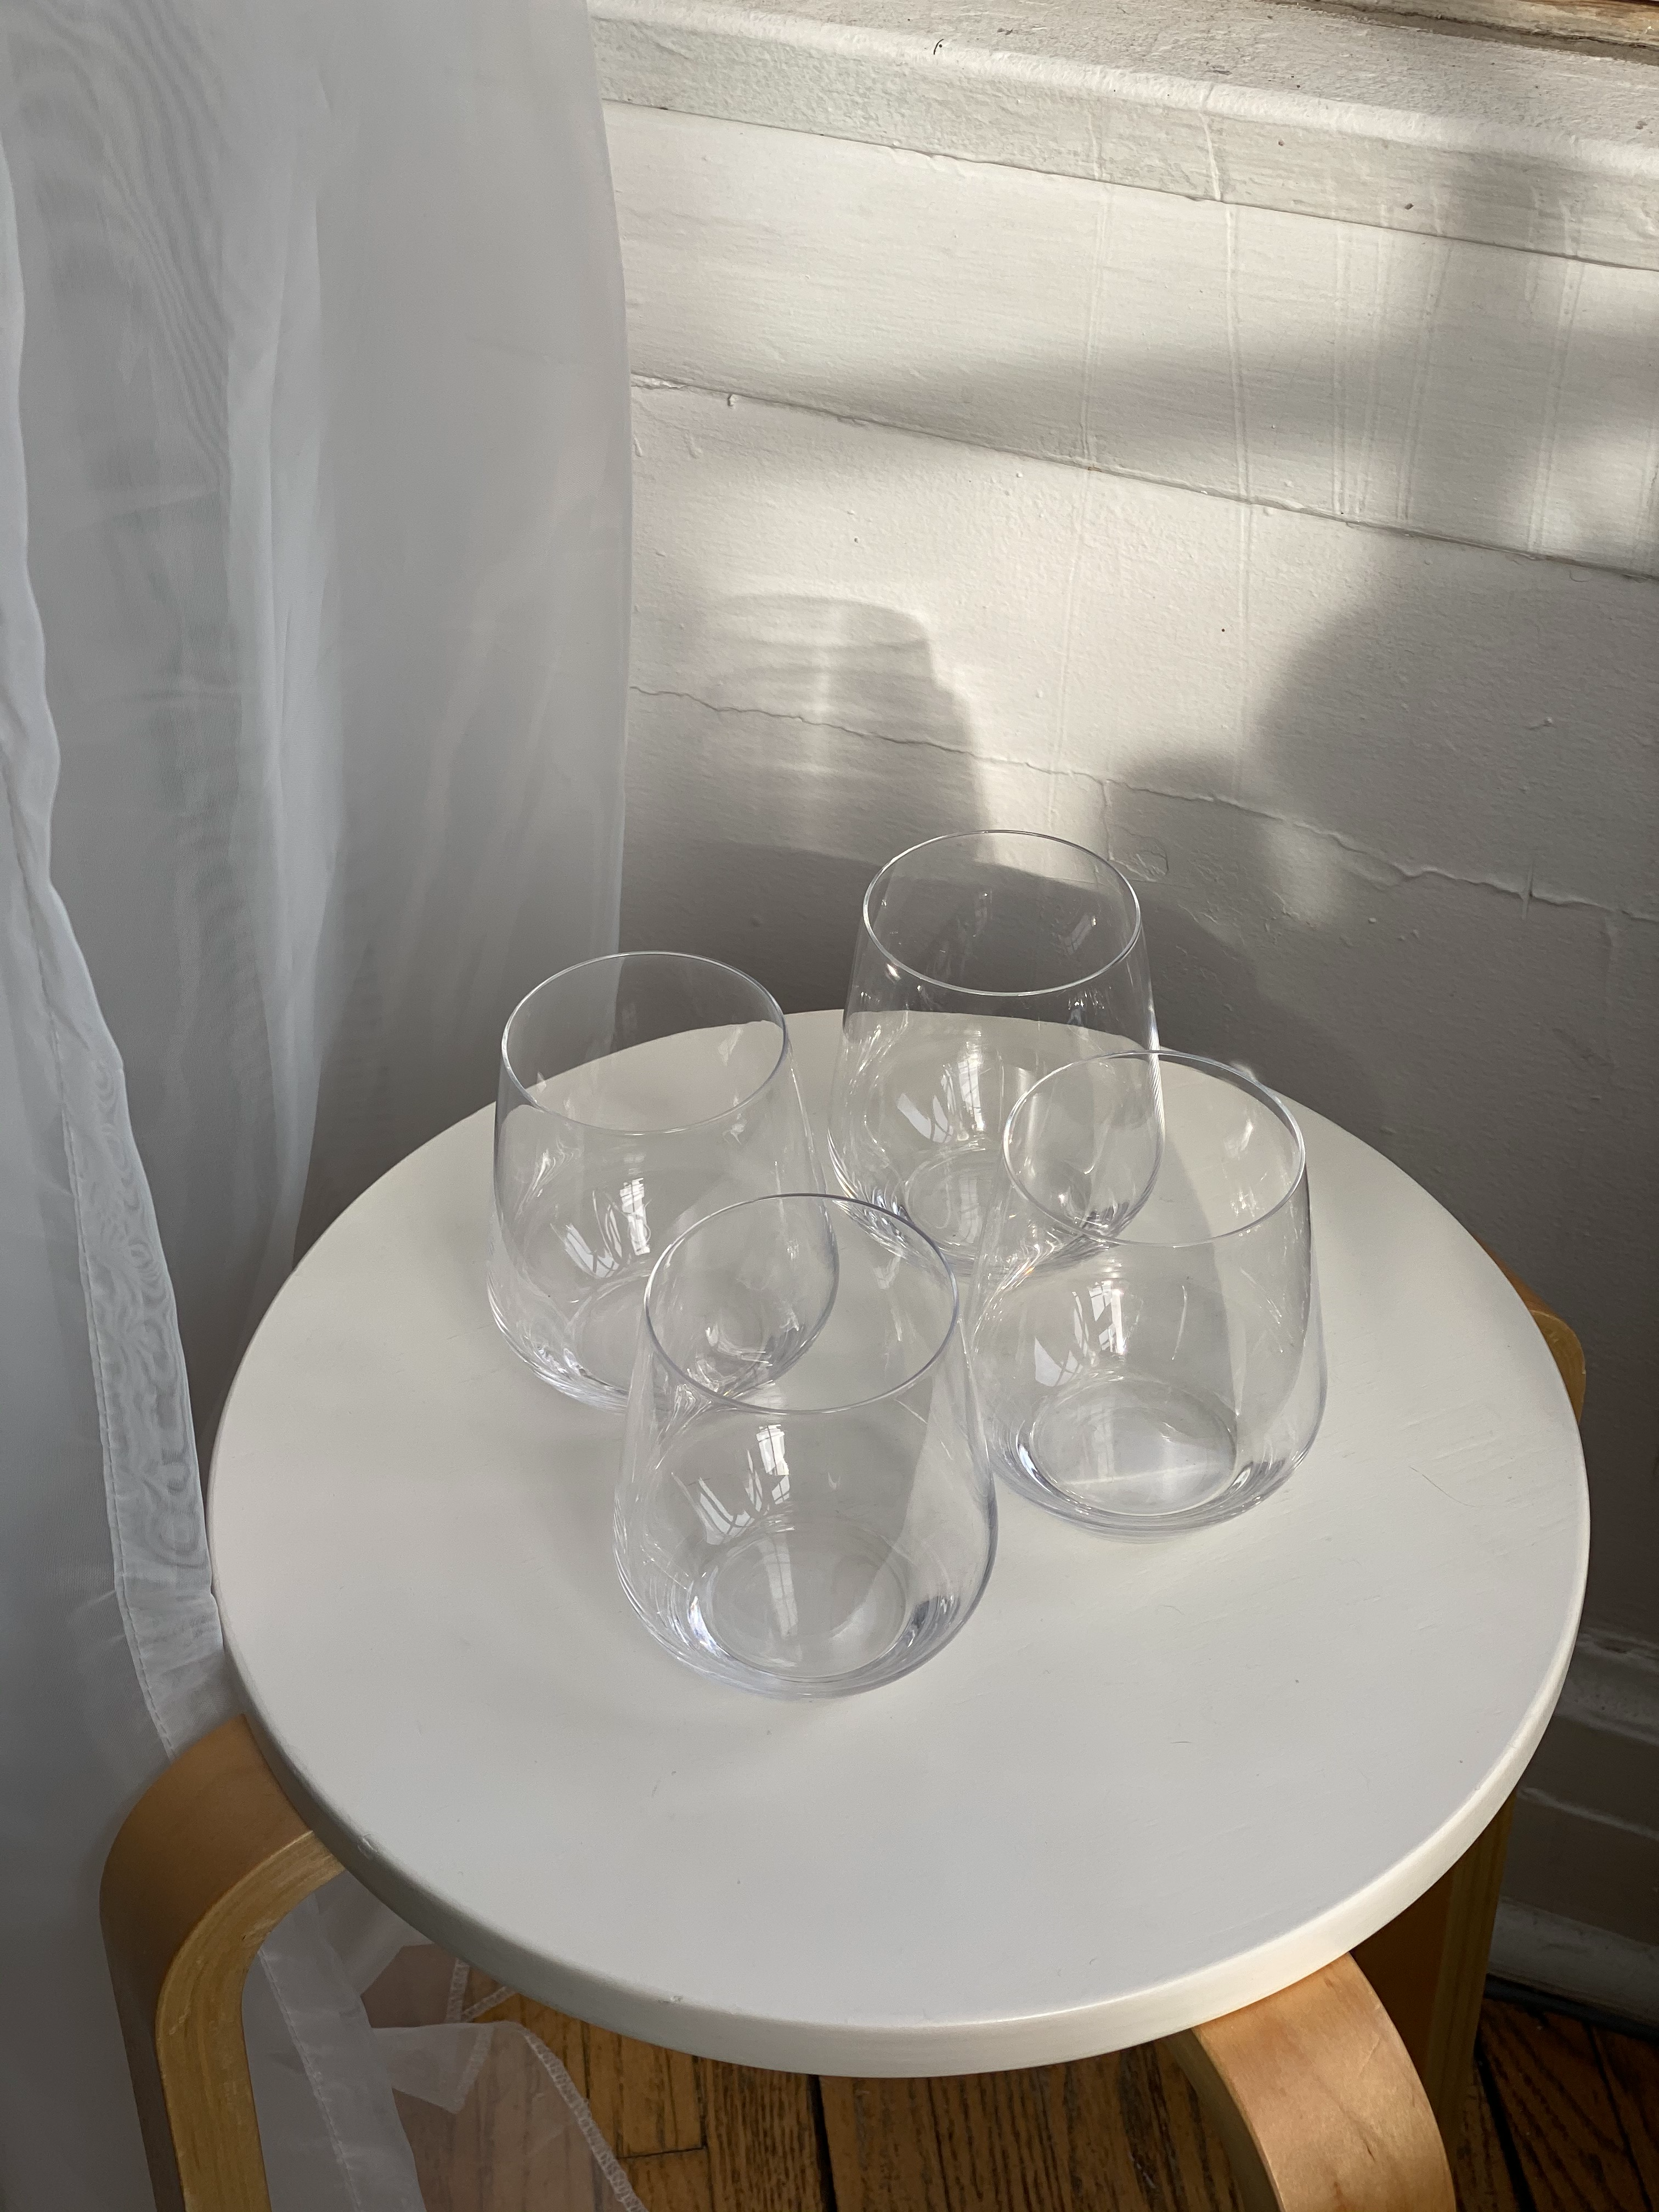 mod, stemless wine / low-ball glasses